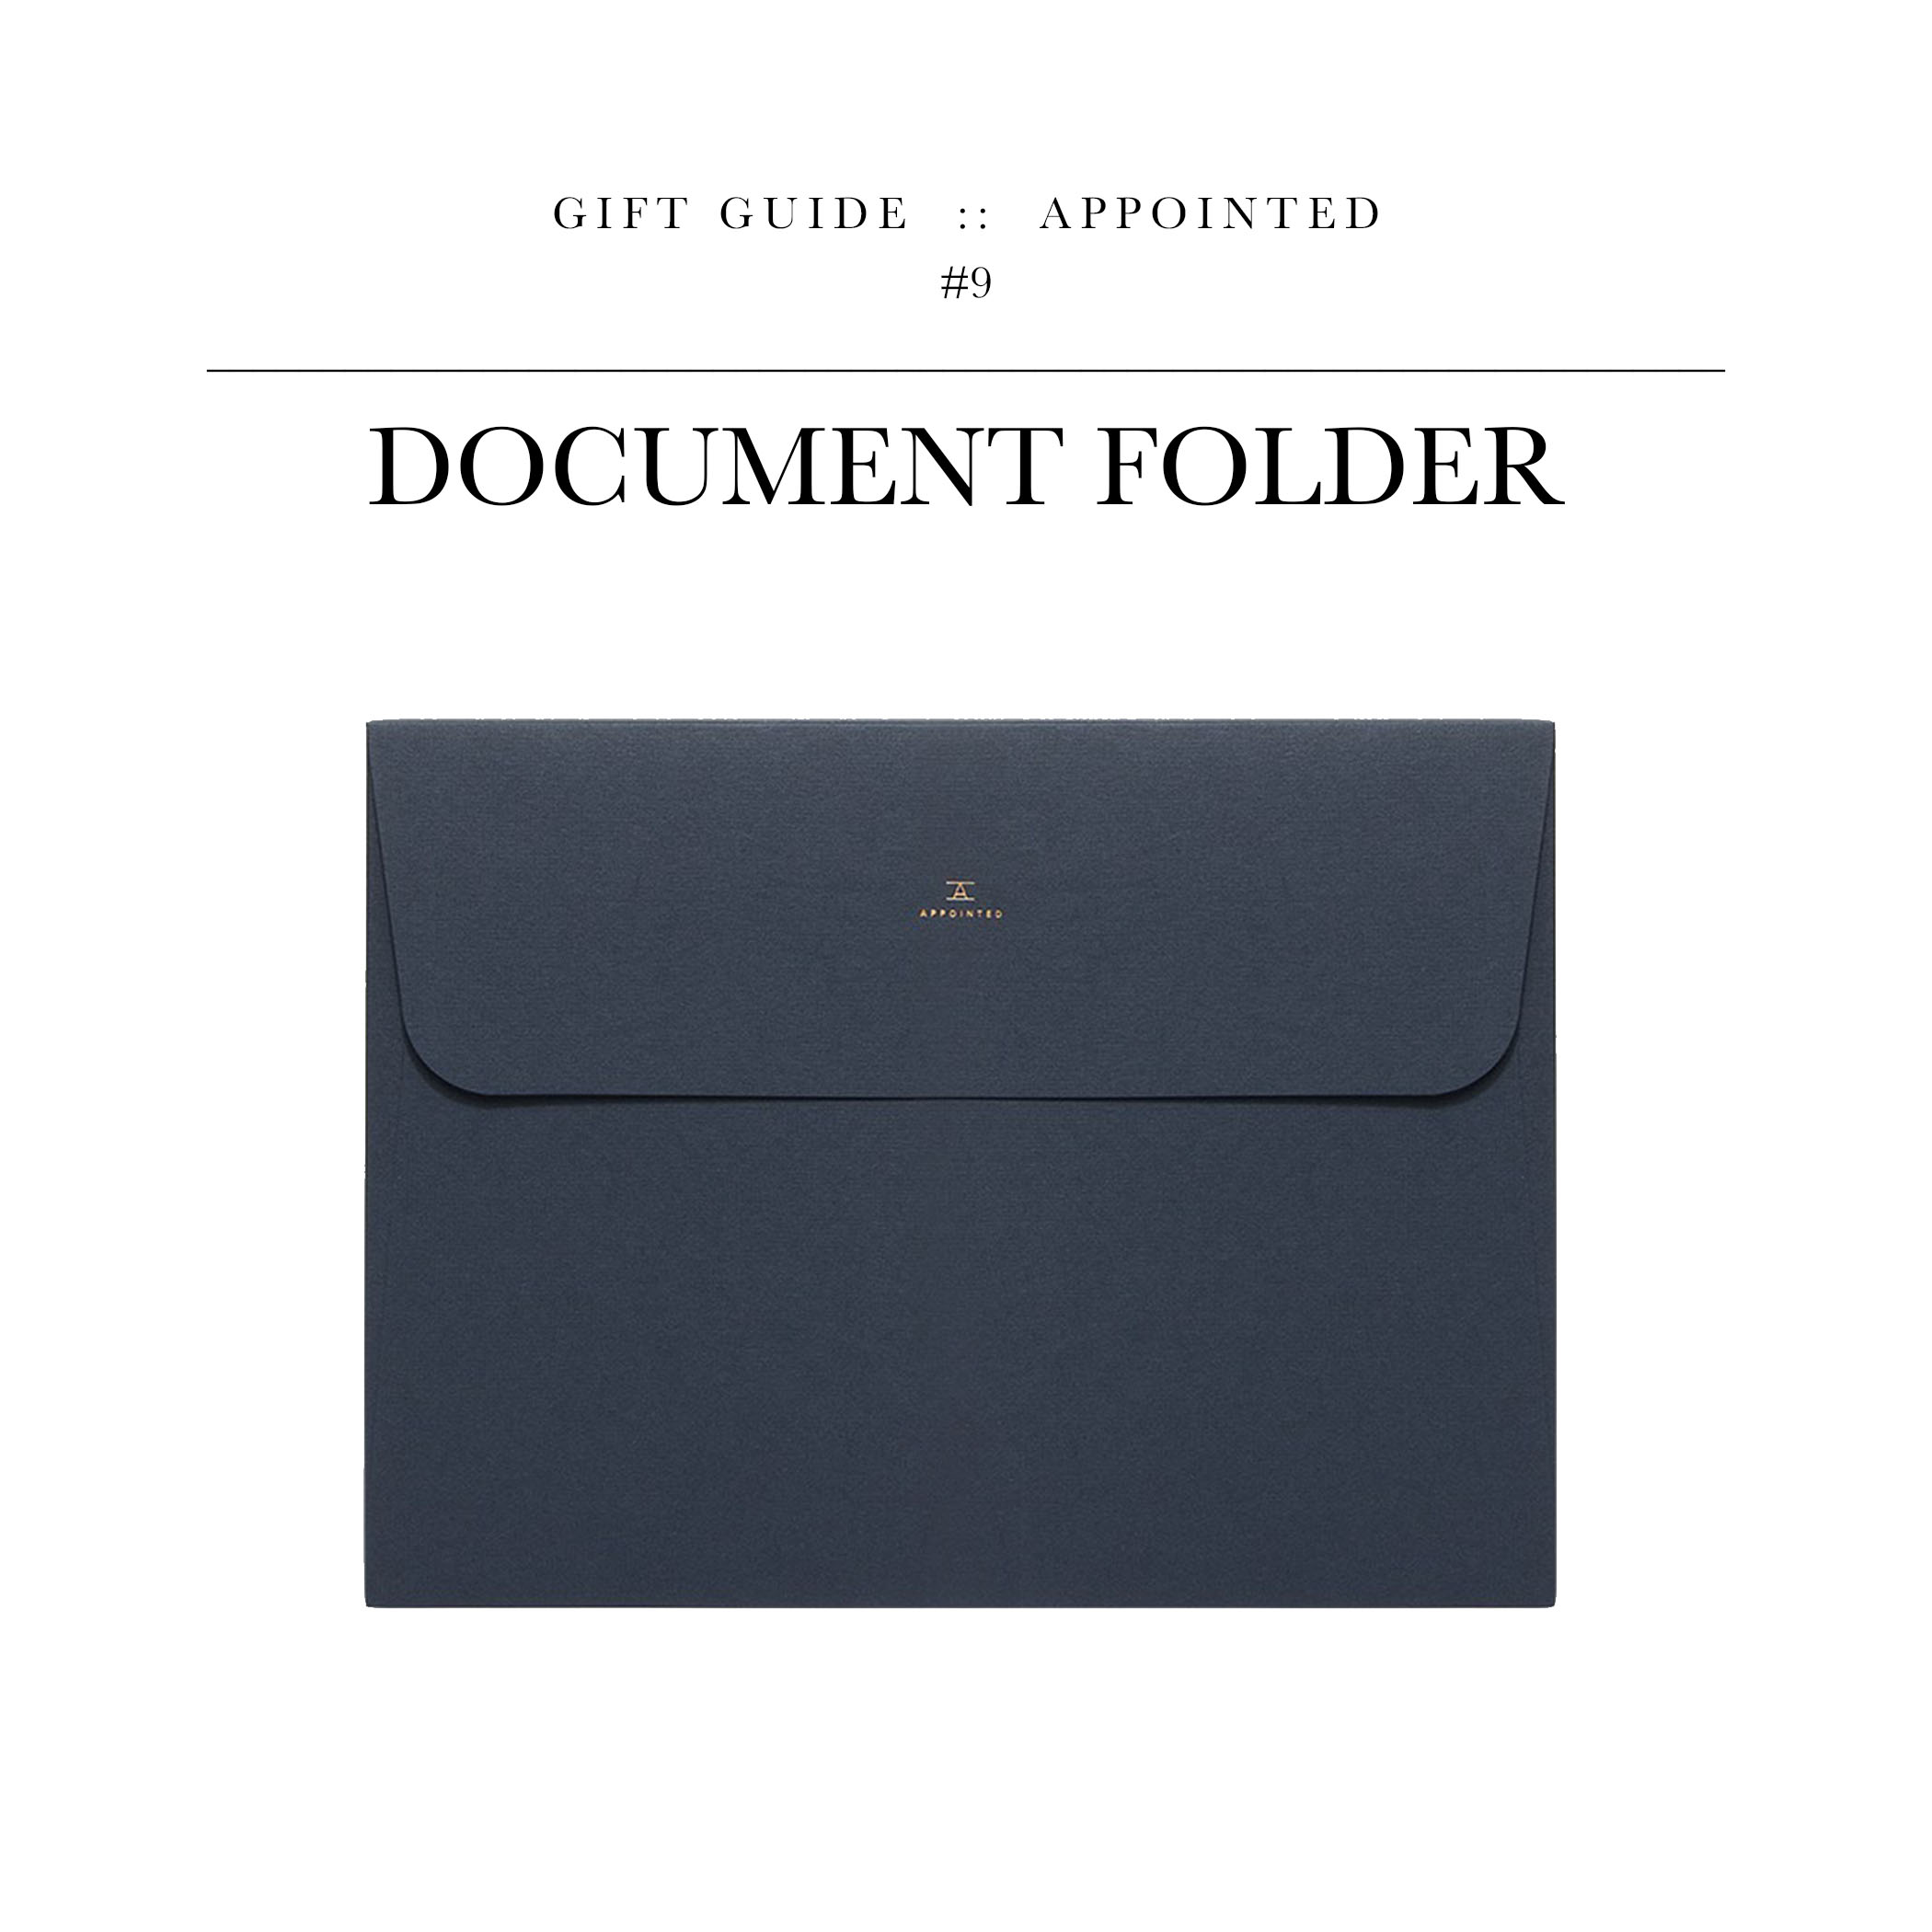 """Document Folder via Appointed // For the neurotic, neat-freak who considers """"organizing"""" to be relaxing. Looks like I just described myself with this one."""